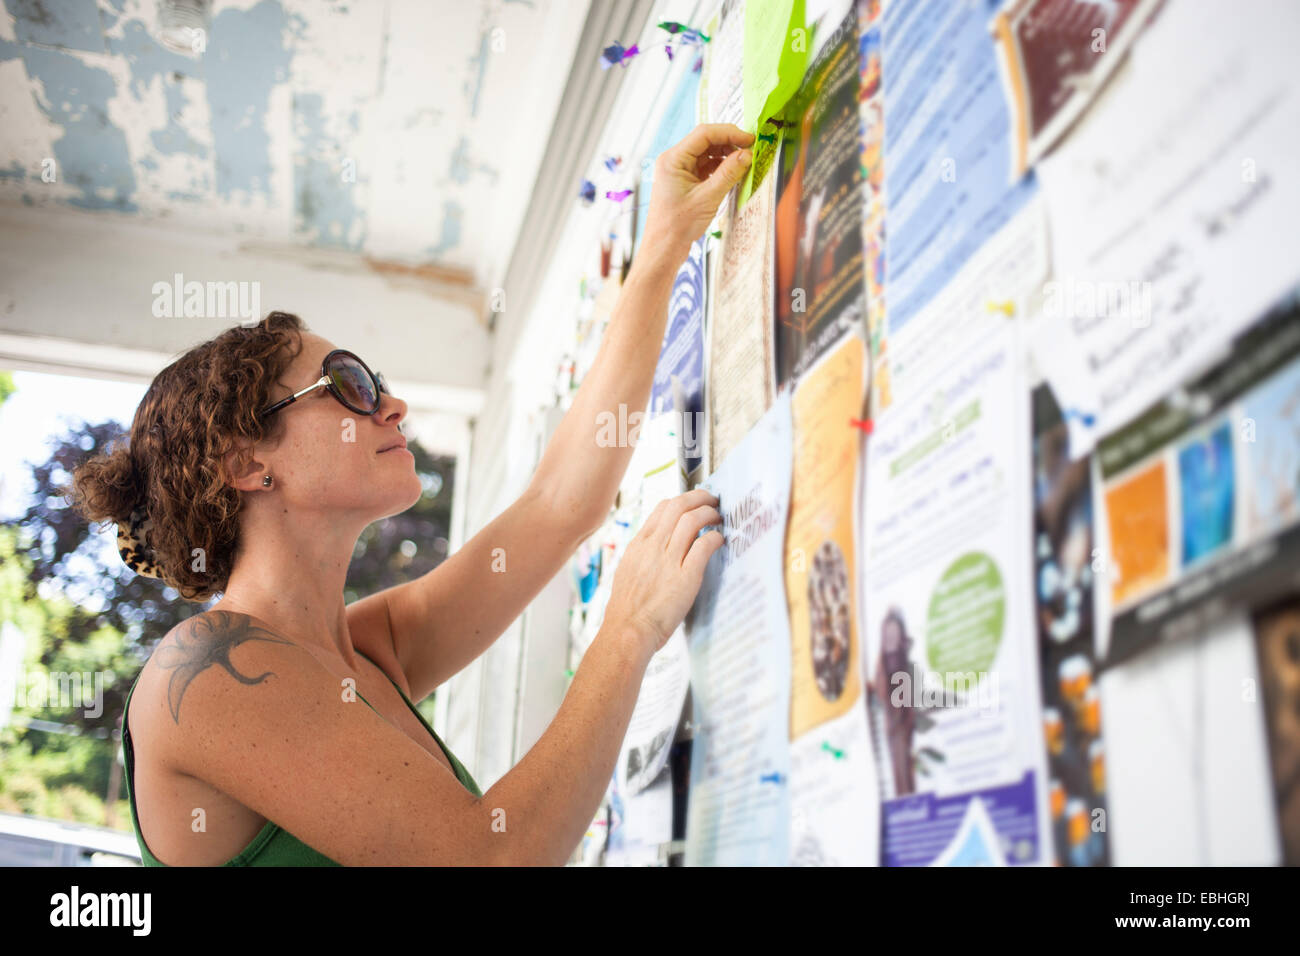 Mid adult woman pinning up notice on community notice board - Stock Image